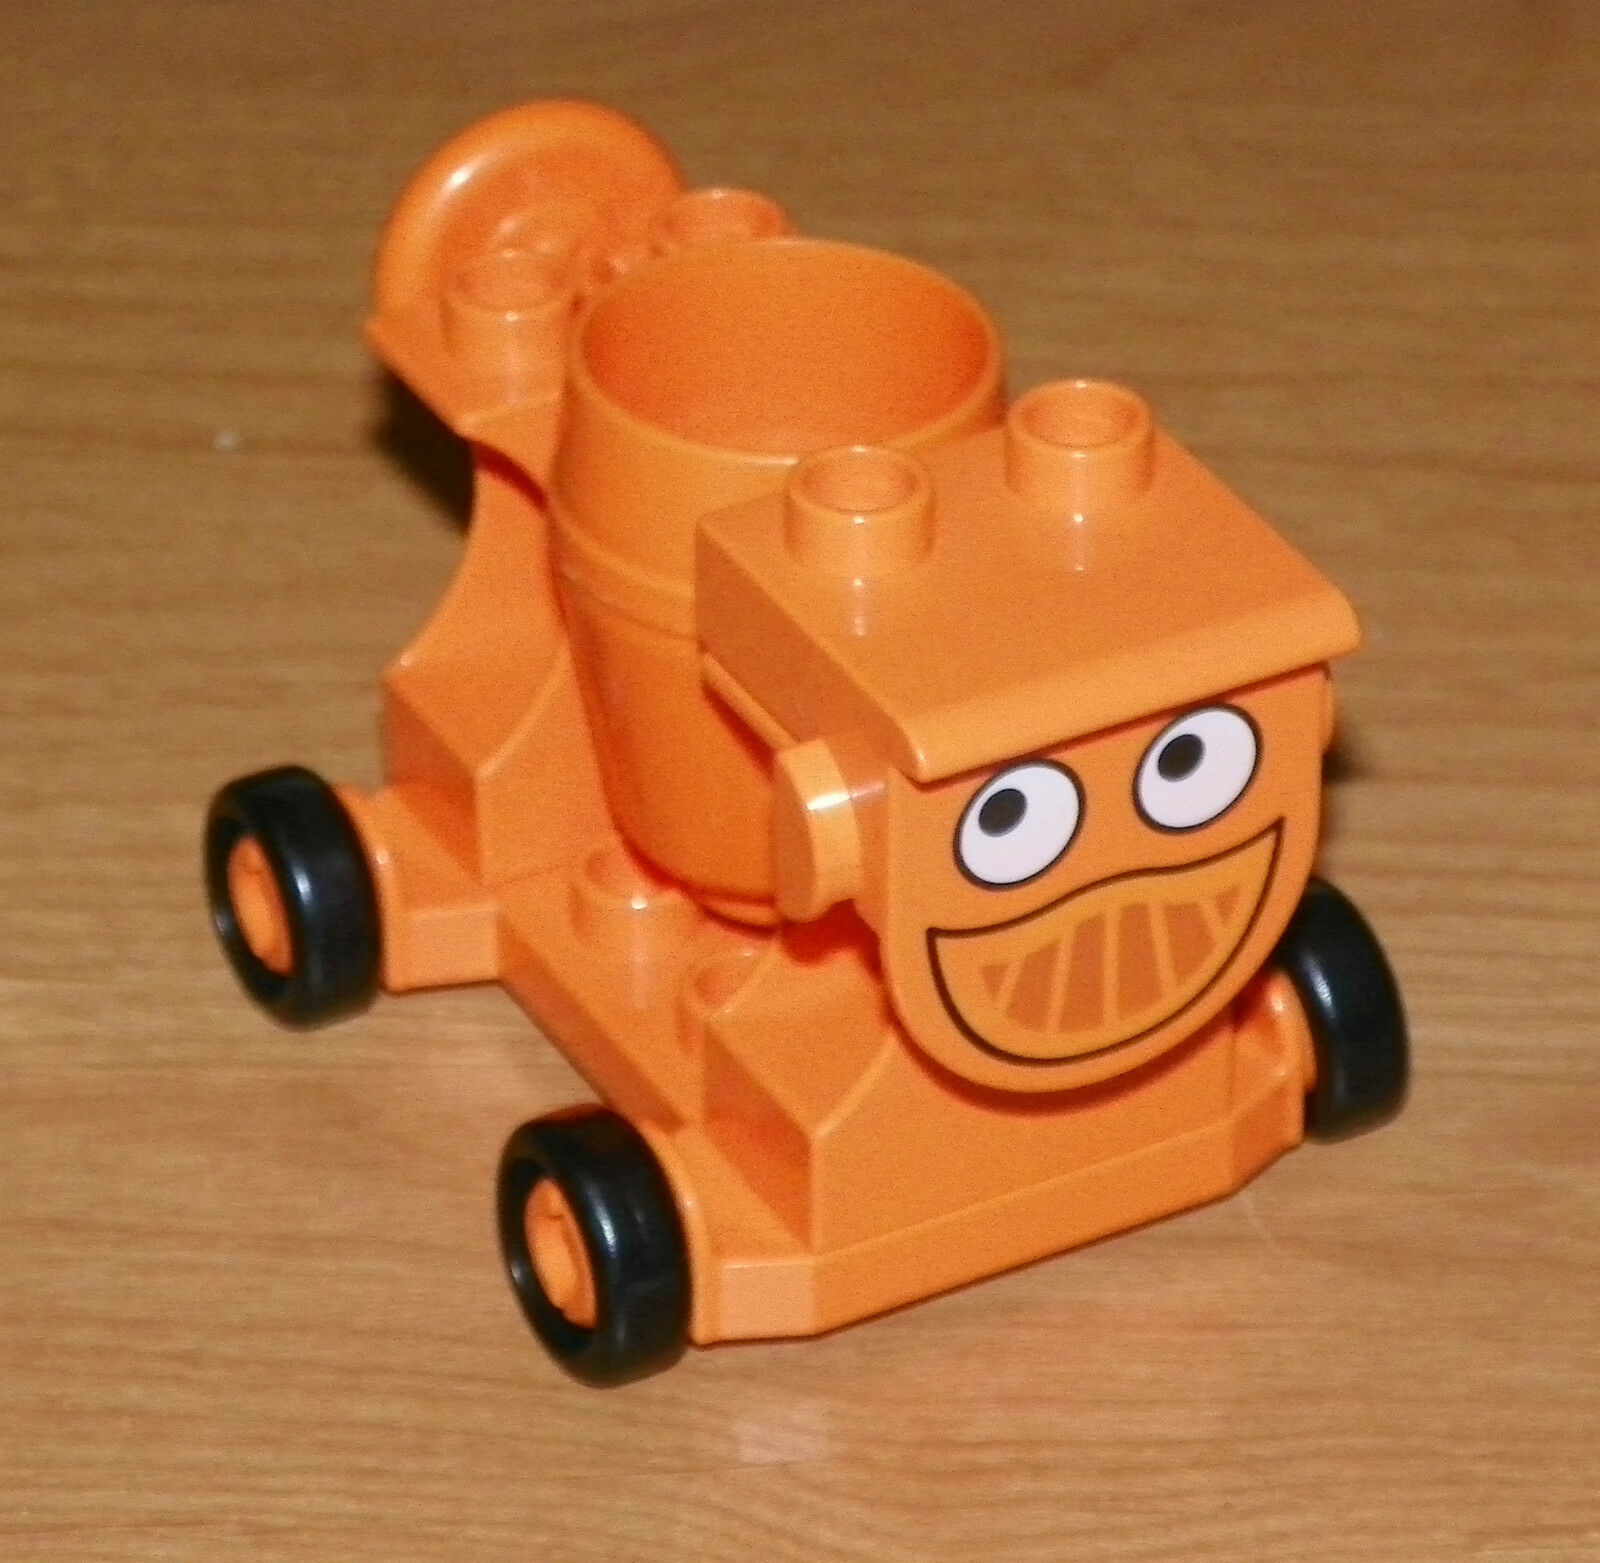 LEGO - Duplo Cement Mixer 'Dizzy' - Complete Assembly